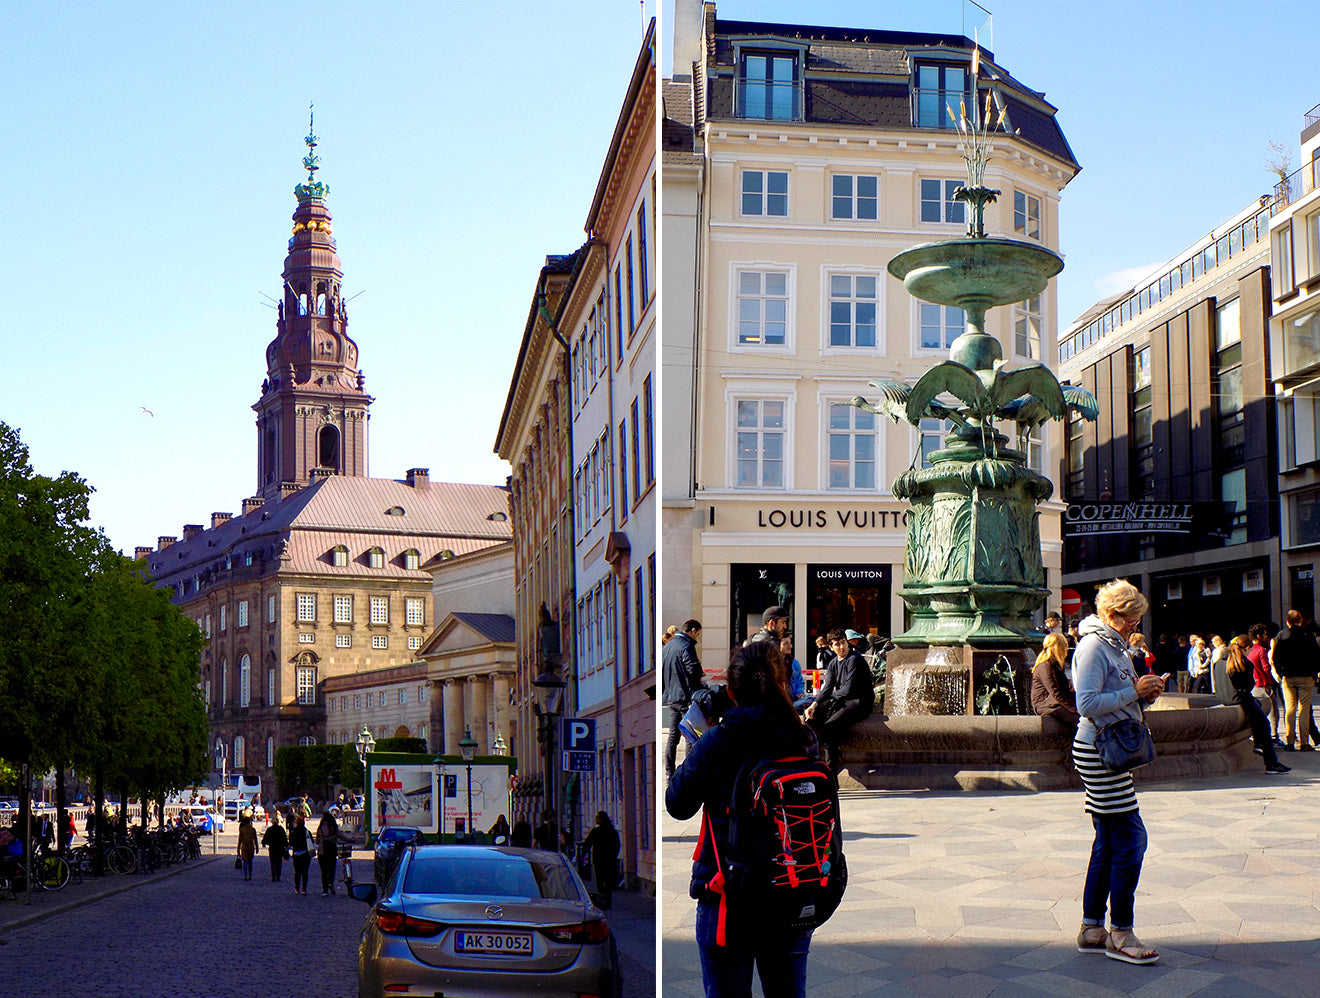 Classic architecture and fountains of Copenhagen